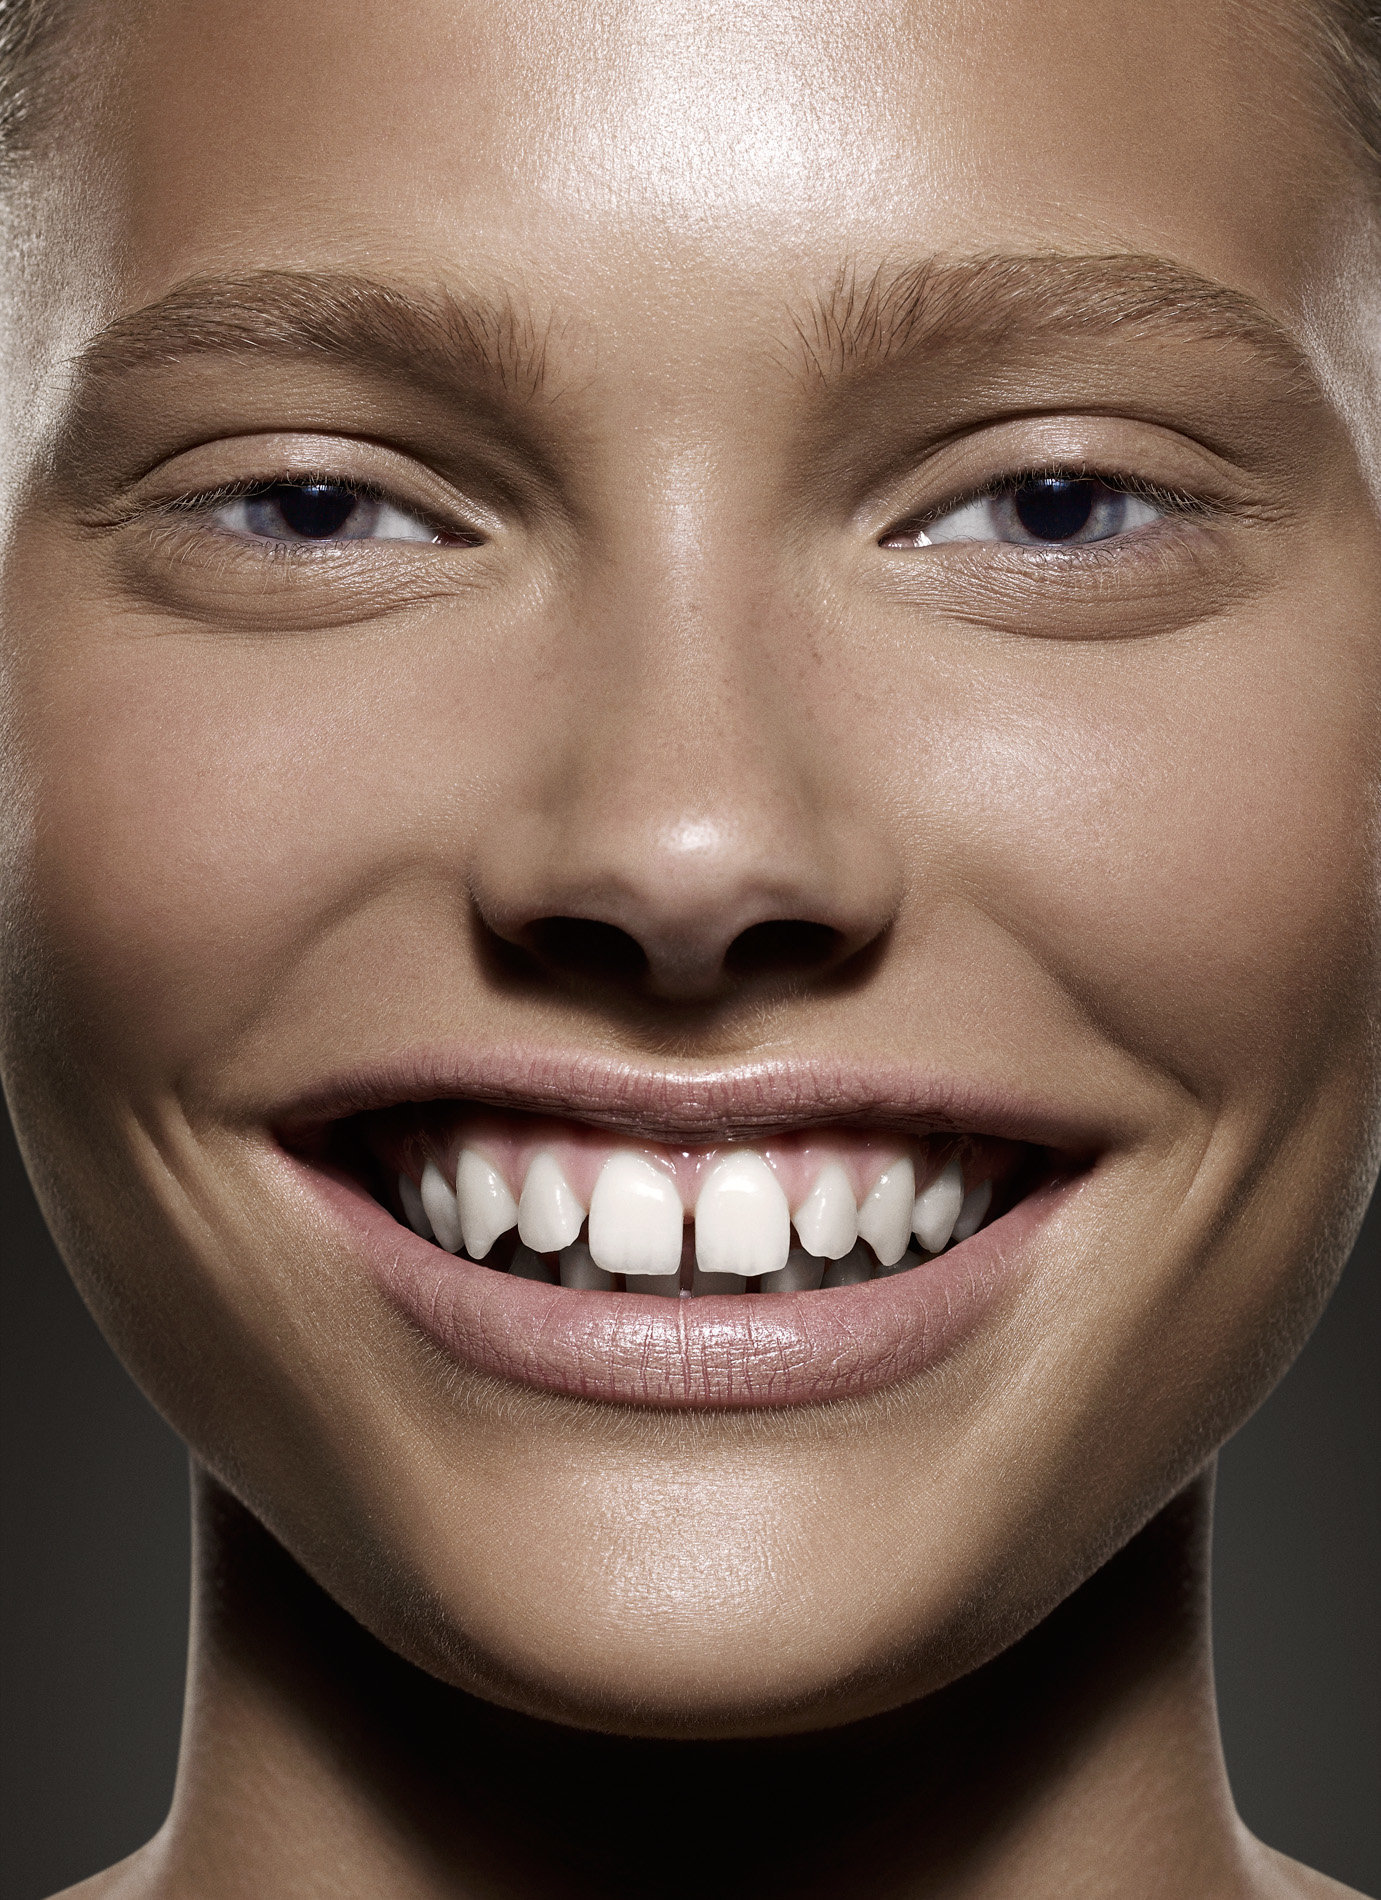 0012_Close up beauty portrait of smiling gap toothed young woman by photographer Kenneth Rimm.jpg